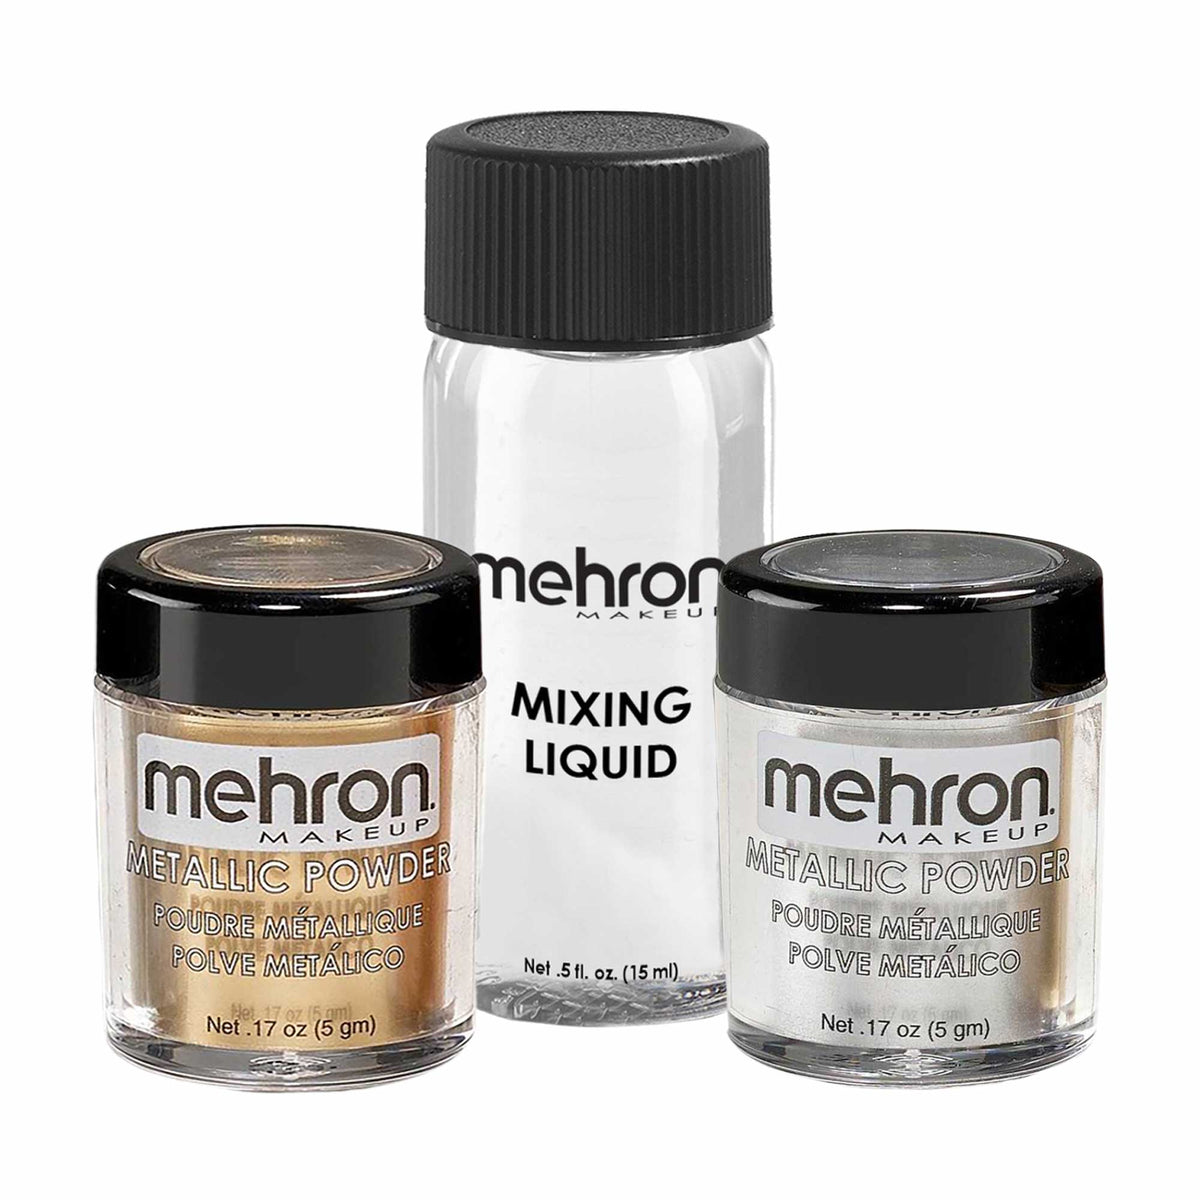 Mehron Metallic Powder With Mixing Liquid